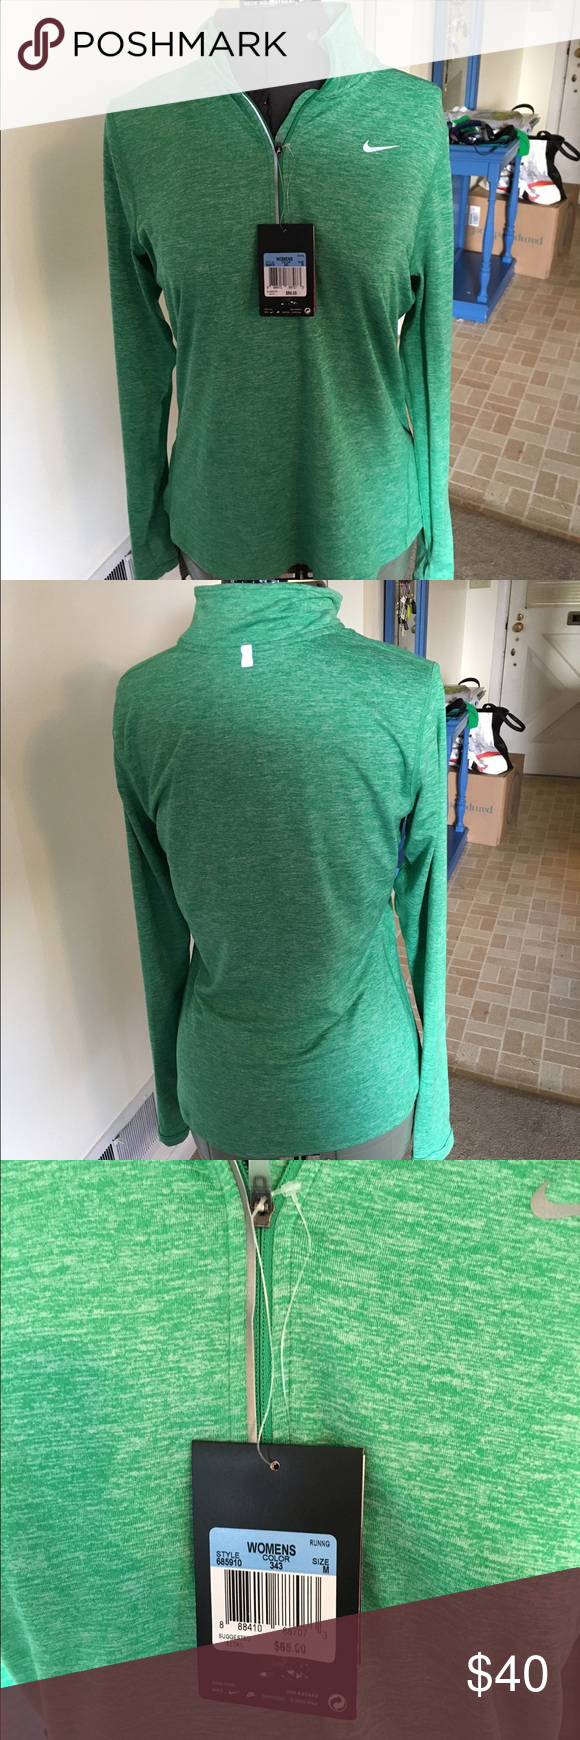 NWT Dri- Fit Pullover Running Jacket Never worn, dri-fit pullover running Jacket from Nike. Features strategically placed ports for earphone cords, reflective patterns and thumb holes in the sleeves. Nike Jackets & Coats